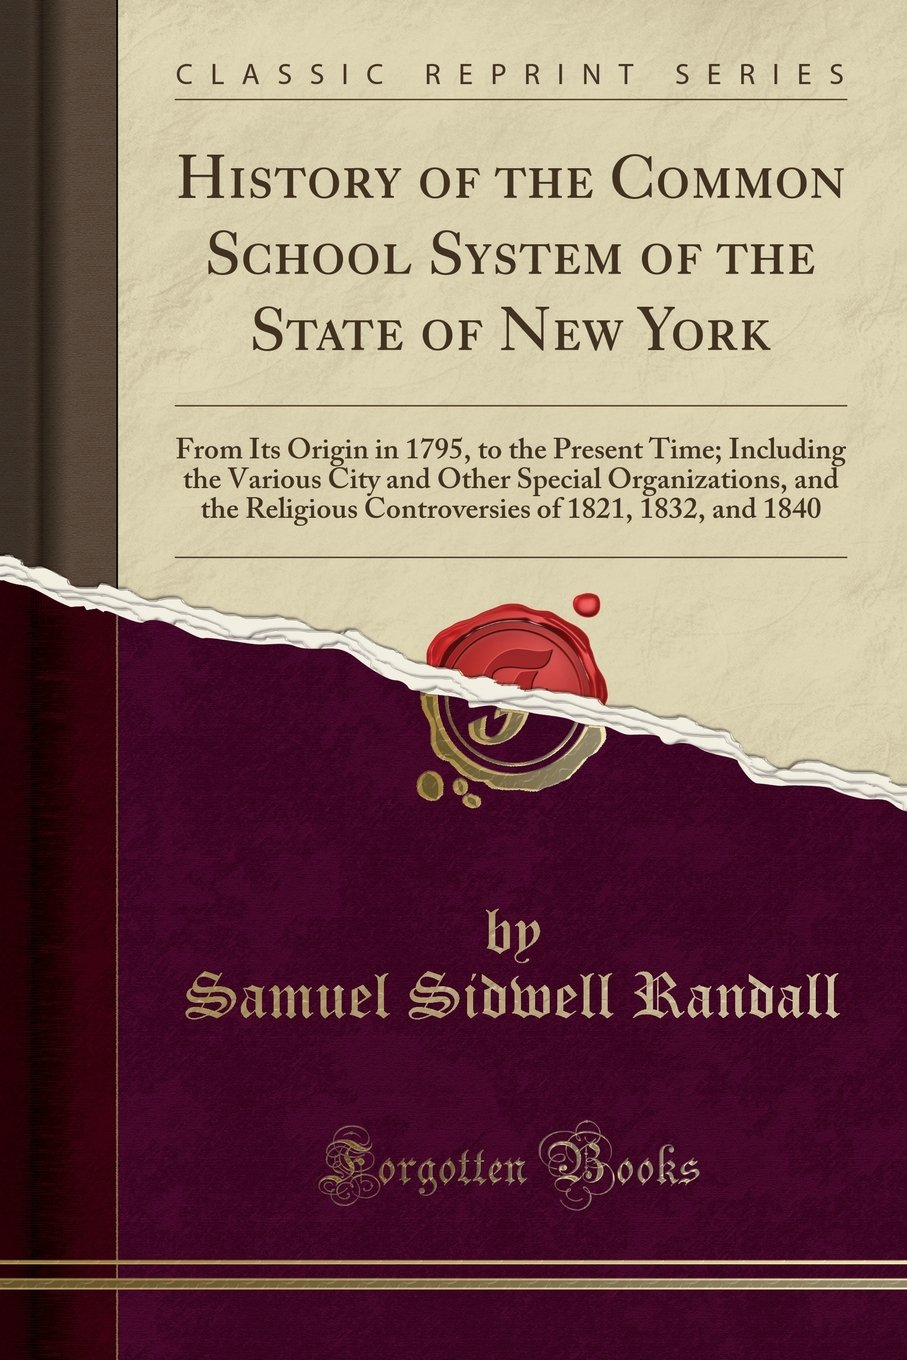 History of the Common School System of the State of New York: From Its Origin in 1795, to the Present Time; Including the Various City and Other ... of 1821, 1832, and 1840 (Classic Reprint) PDF ePub fb2 ebook